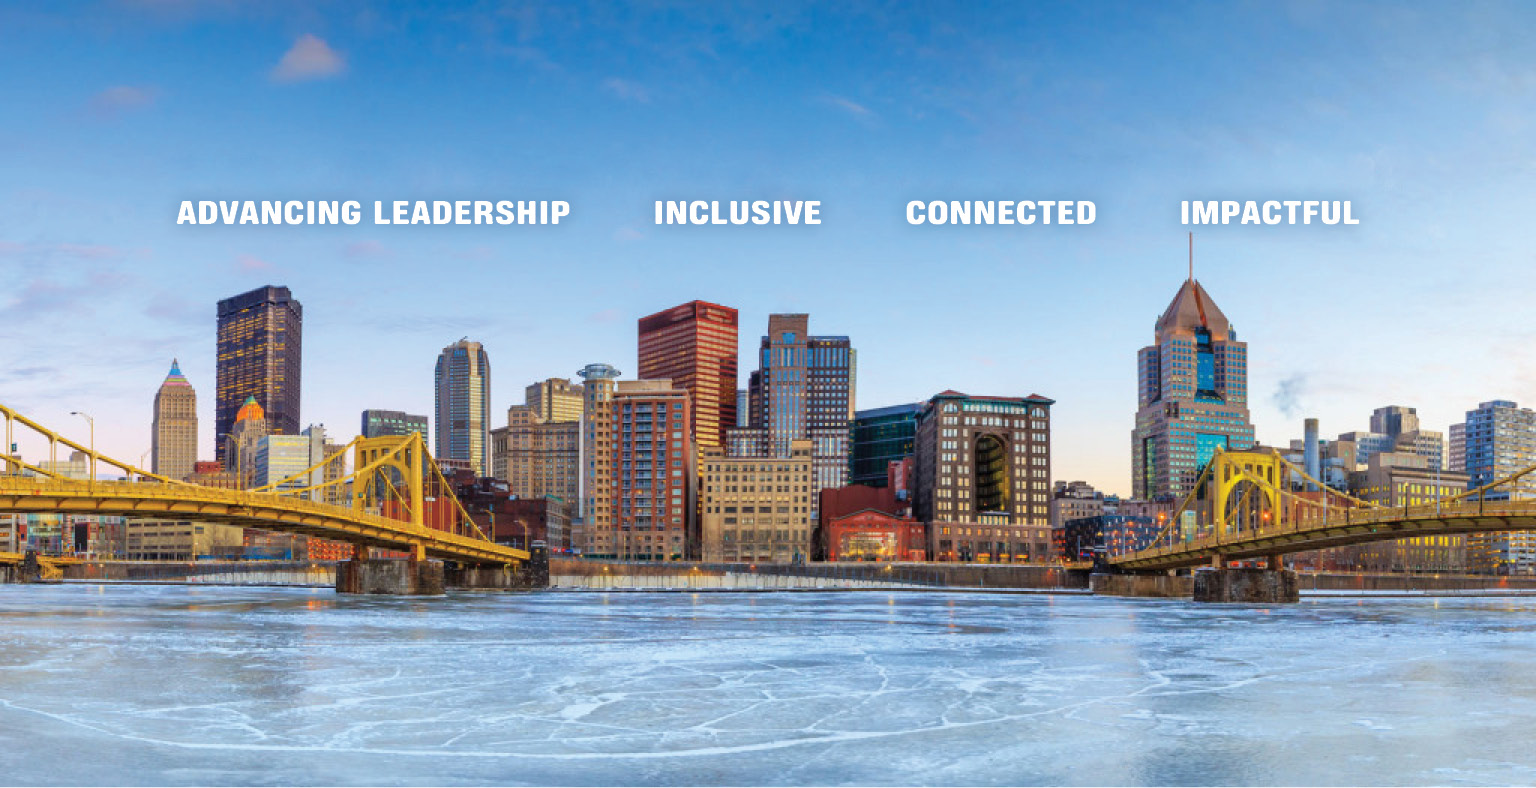 coro pittsburgh advancing leadership inclusive connected